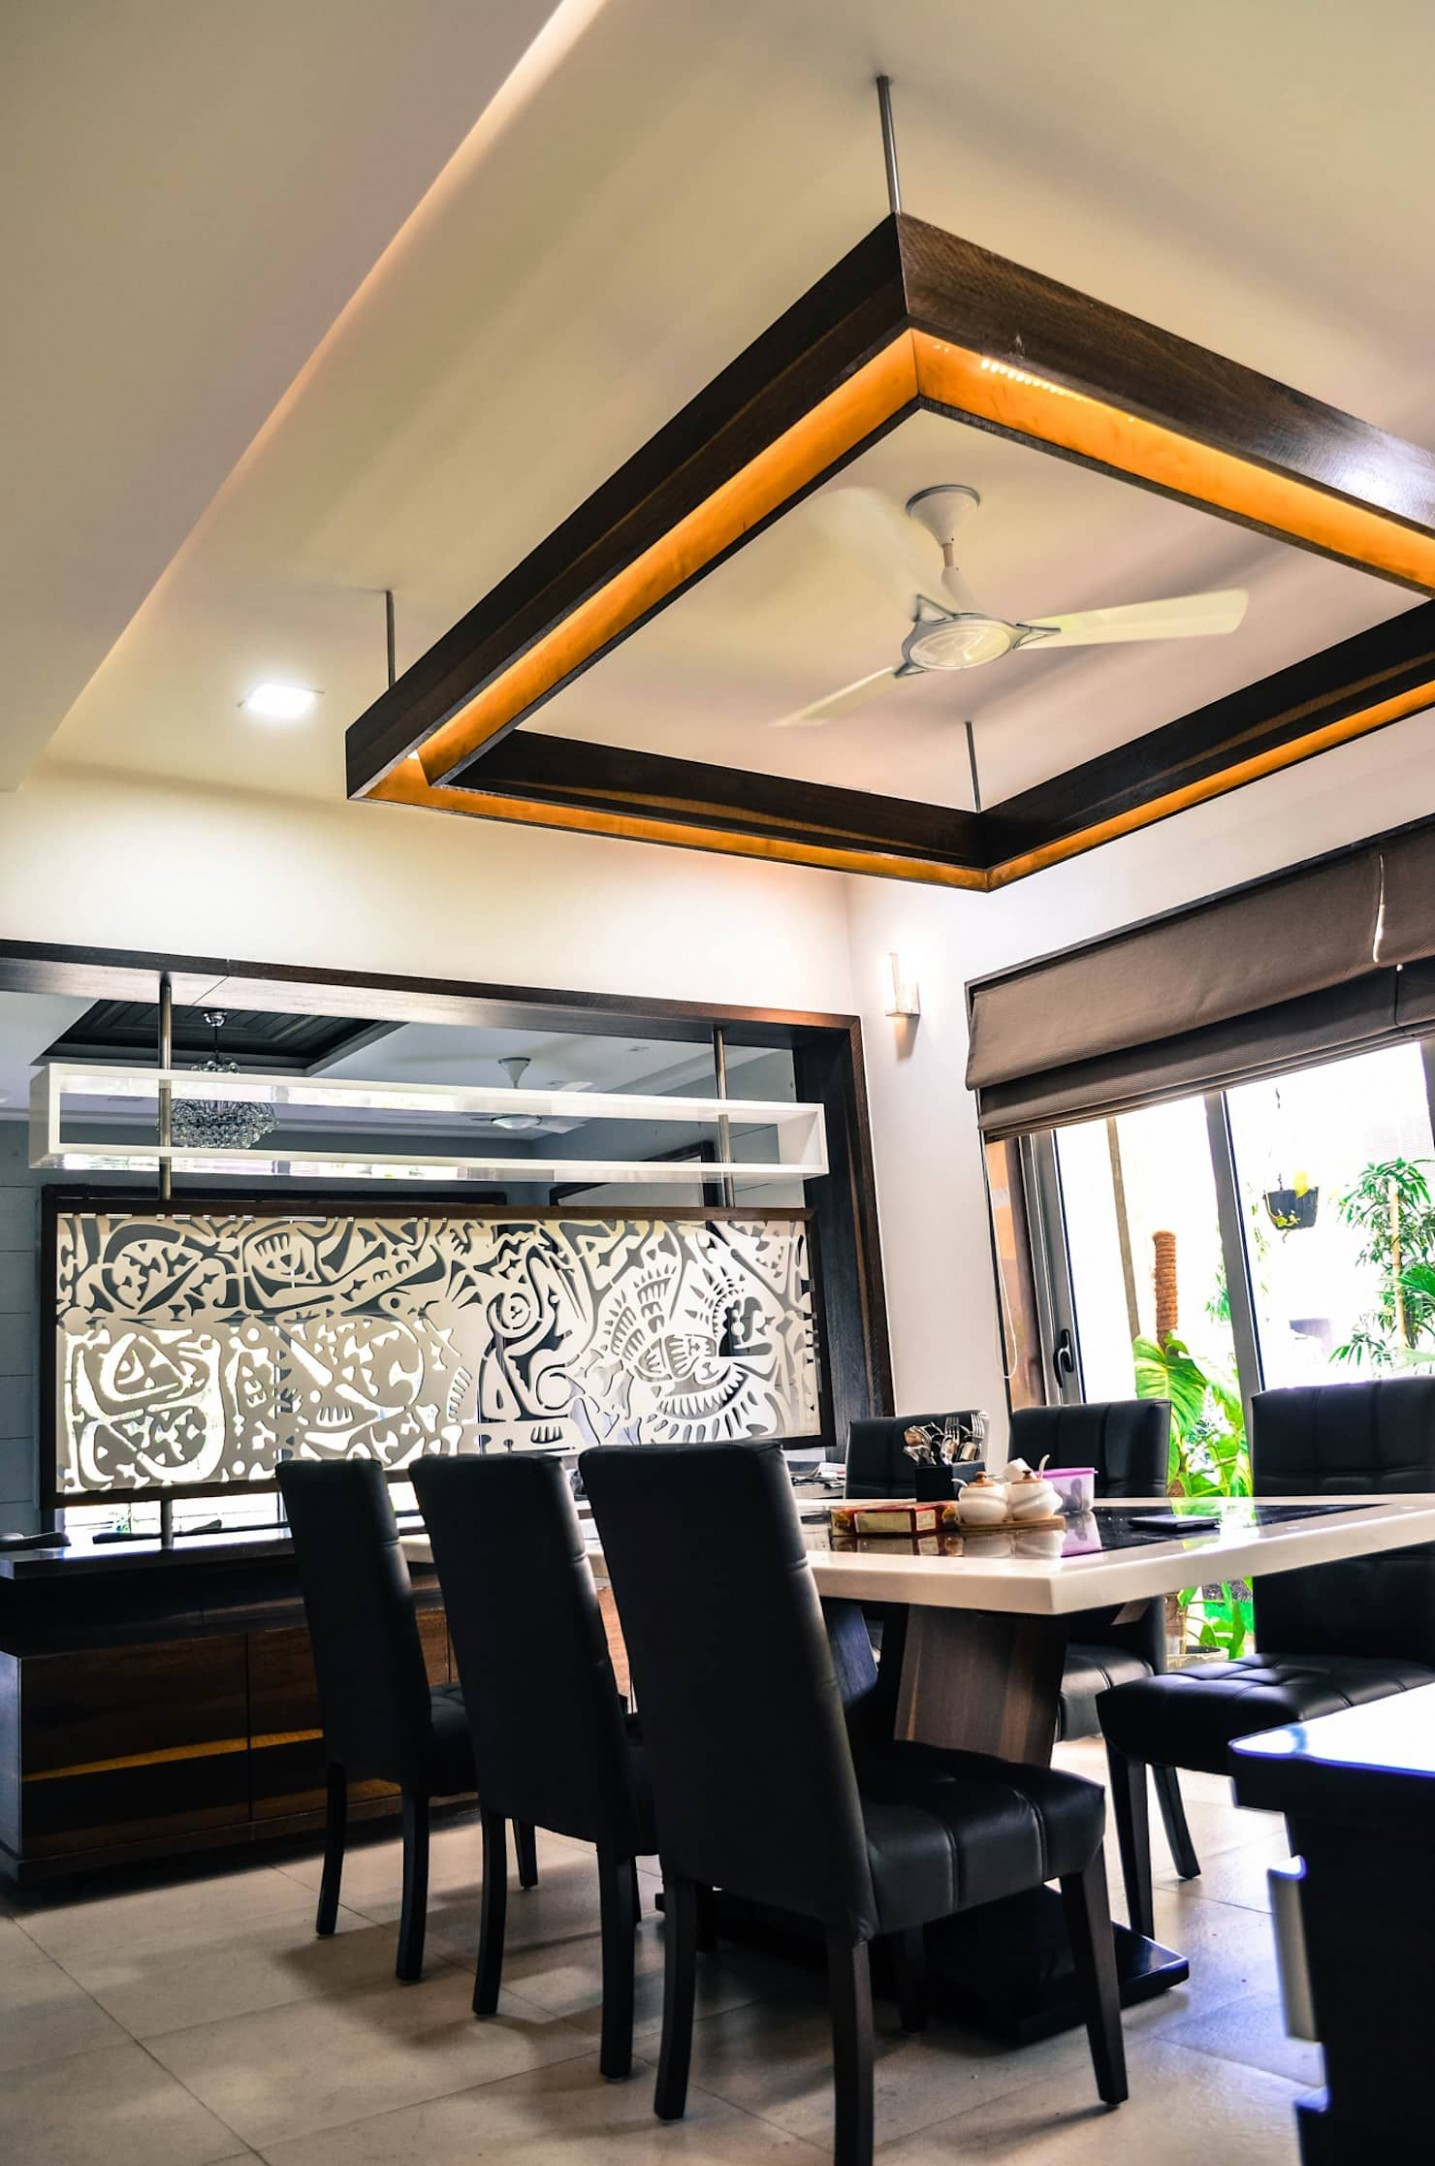 Modern dining room by homify modern  homify  Ceiling design  - Dining Room Ideas Homify